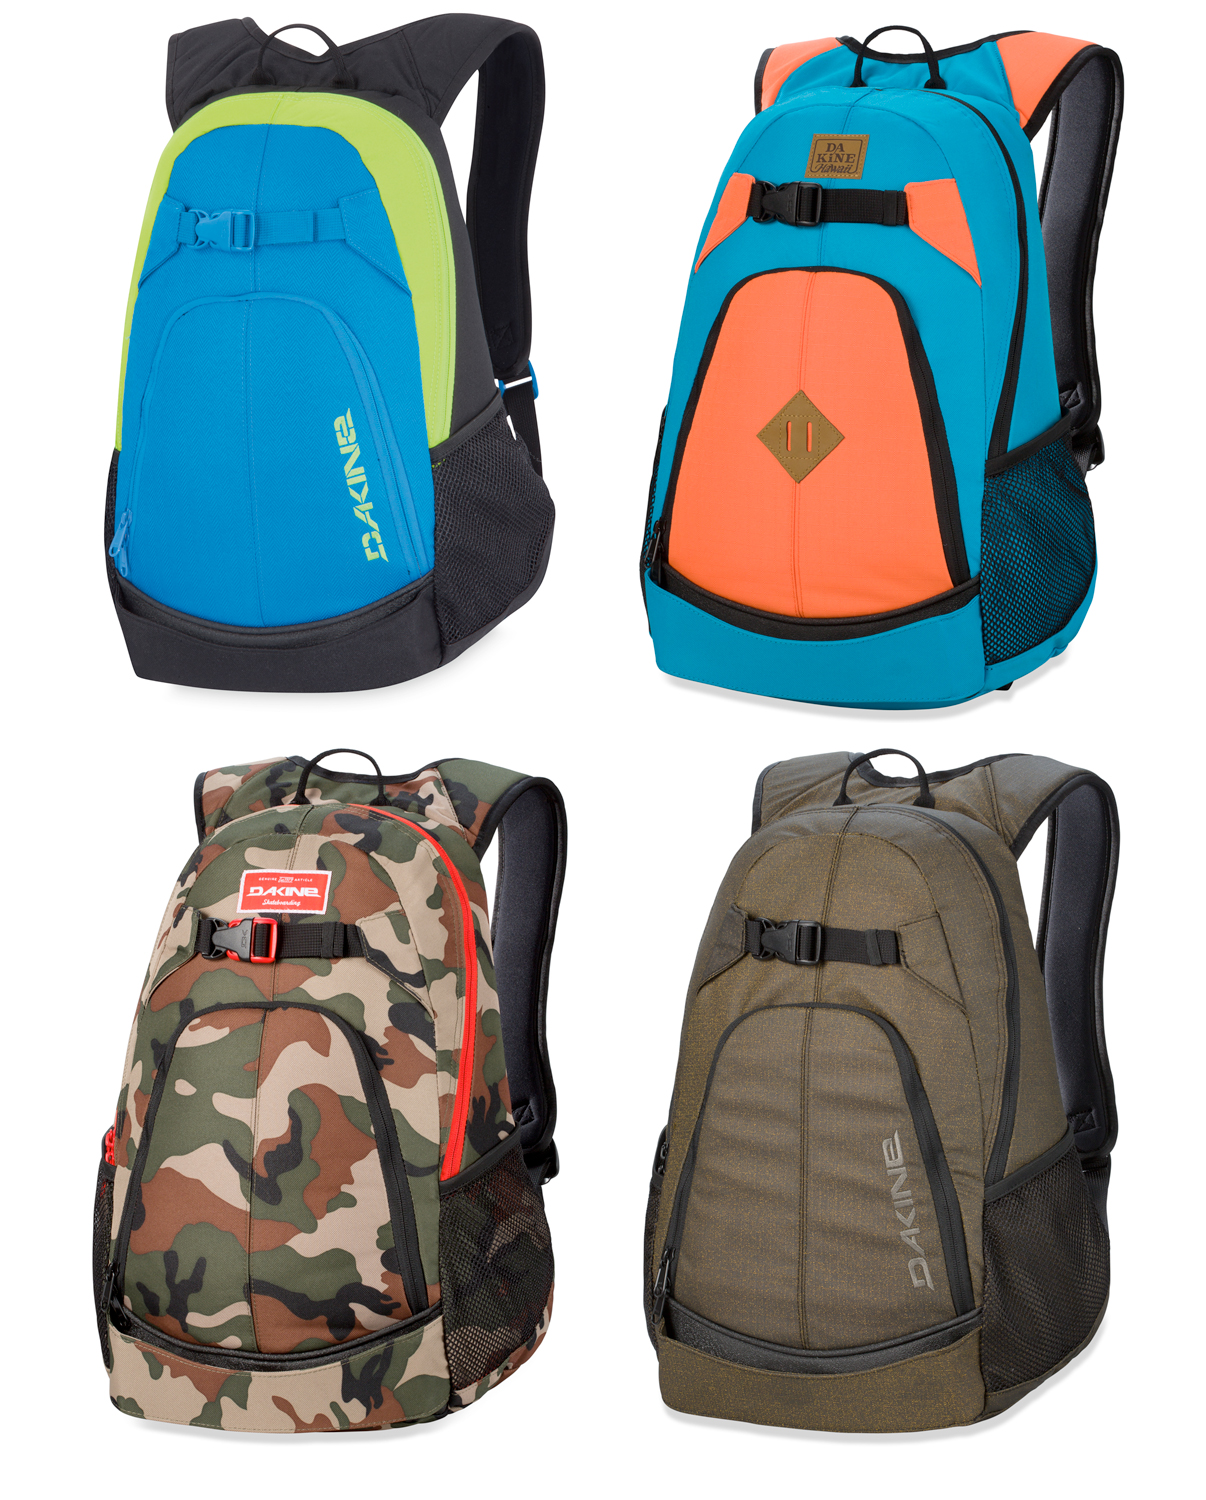 dc63ee2ff482 Sentinel Dakine Pivot 21L Backpack 2014 Skateboard Rucksack Skate Back Pack  Bag 8120080